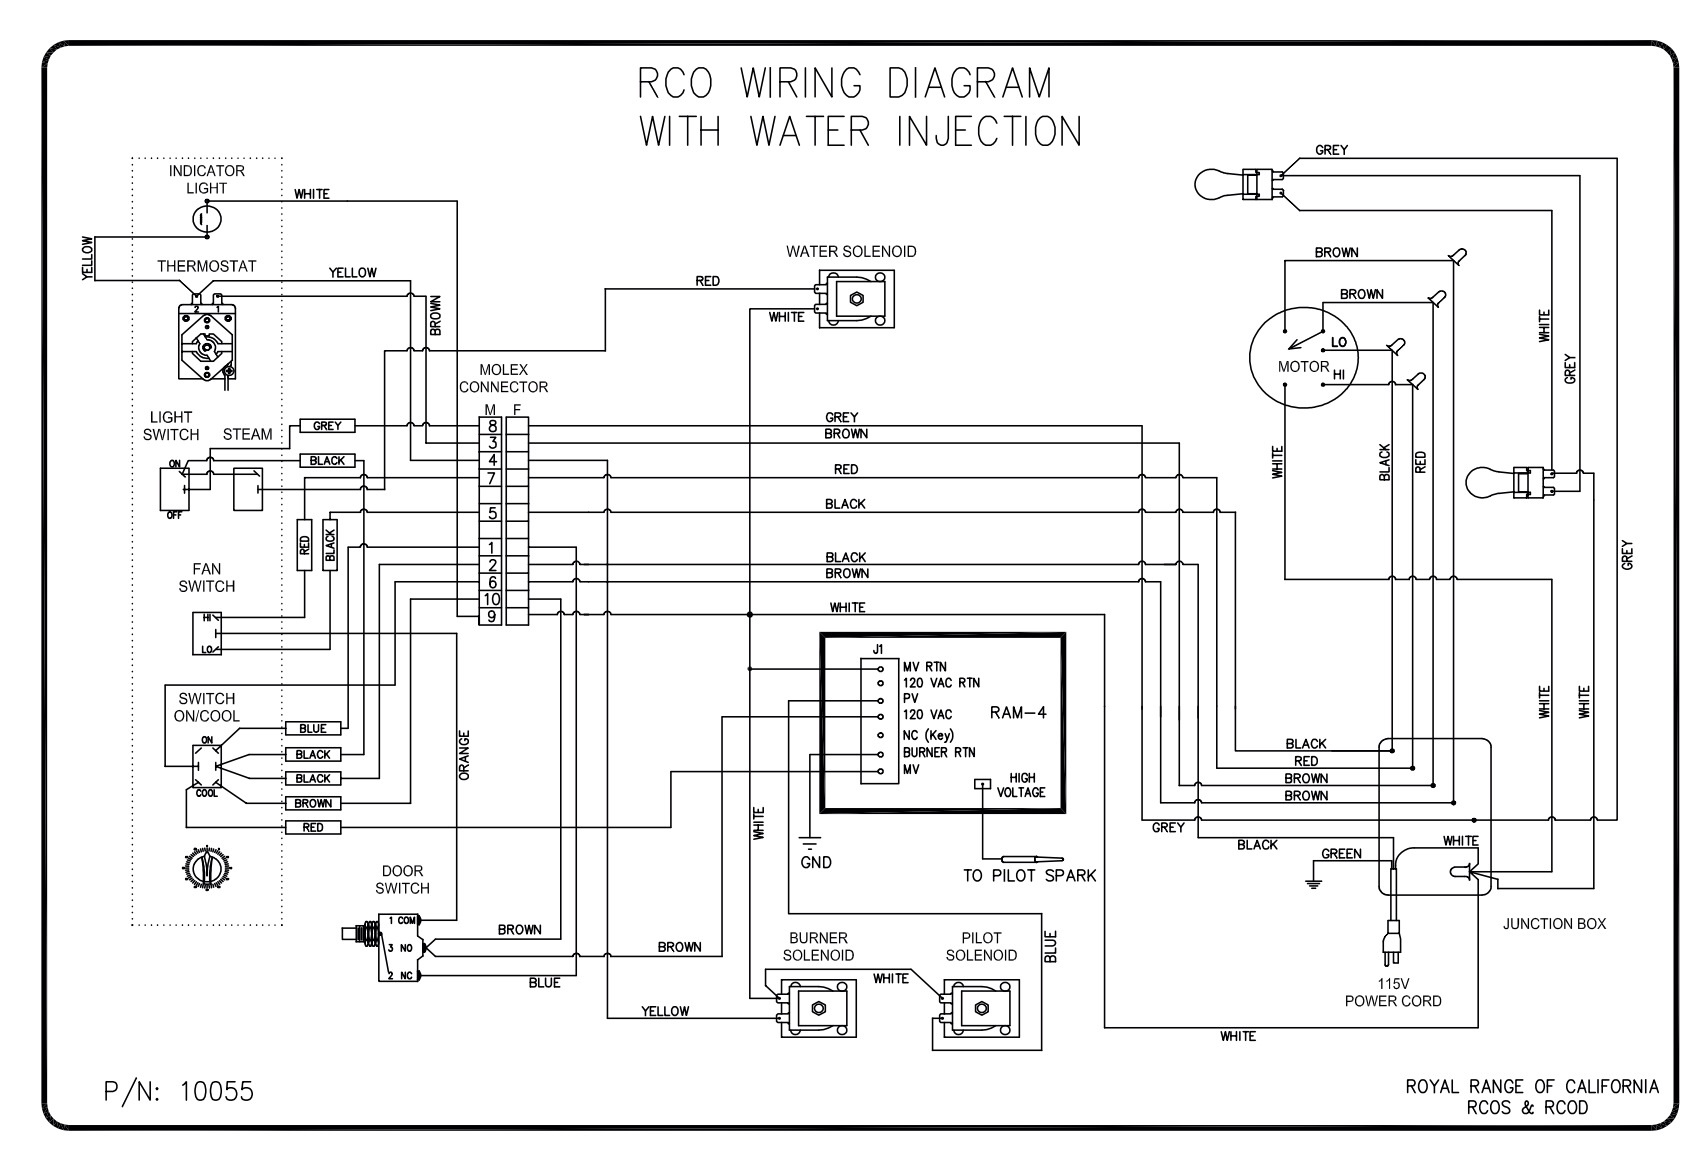 RCO w water inj prior2014 wiring diagrams royal range of california Range Plug Wiring Diagram at n-0.co